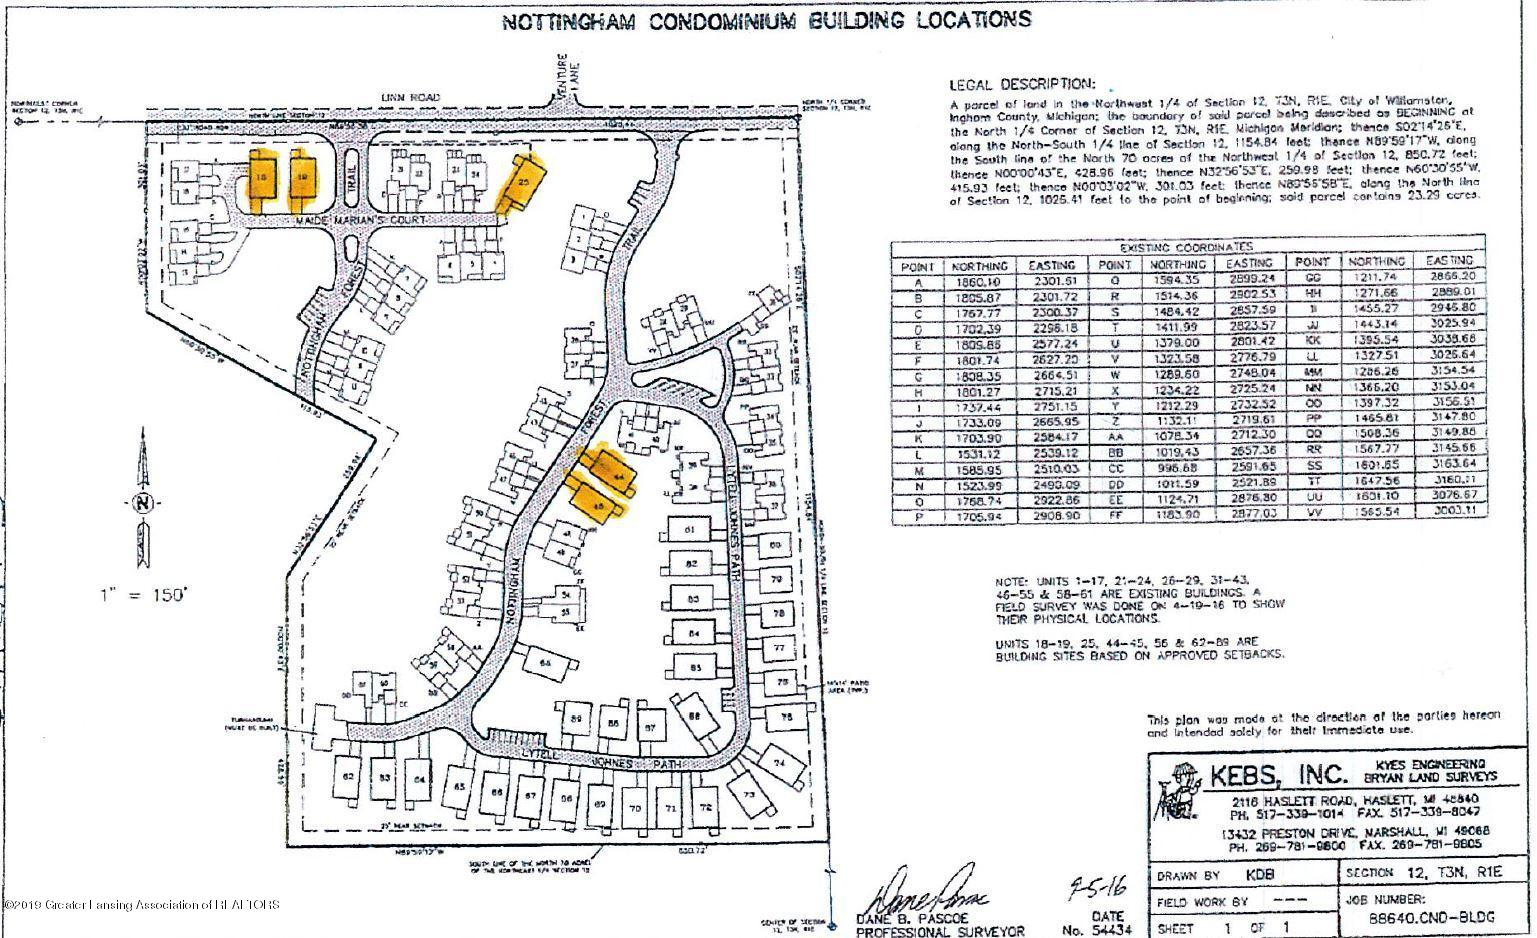 1518 Nottingham Forest - Nottingham Condominium Site Plan - 1